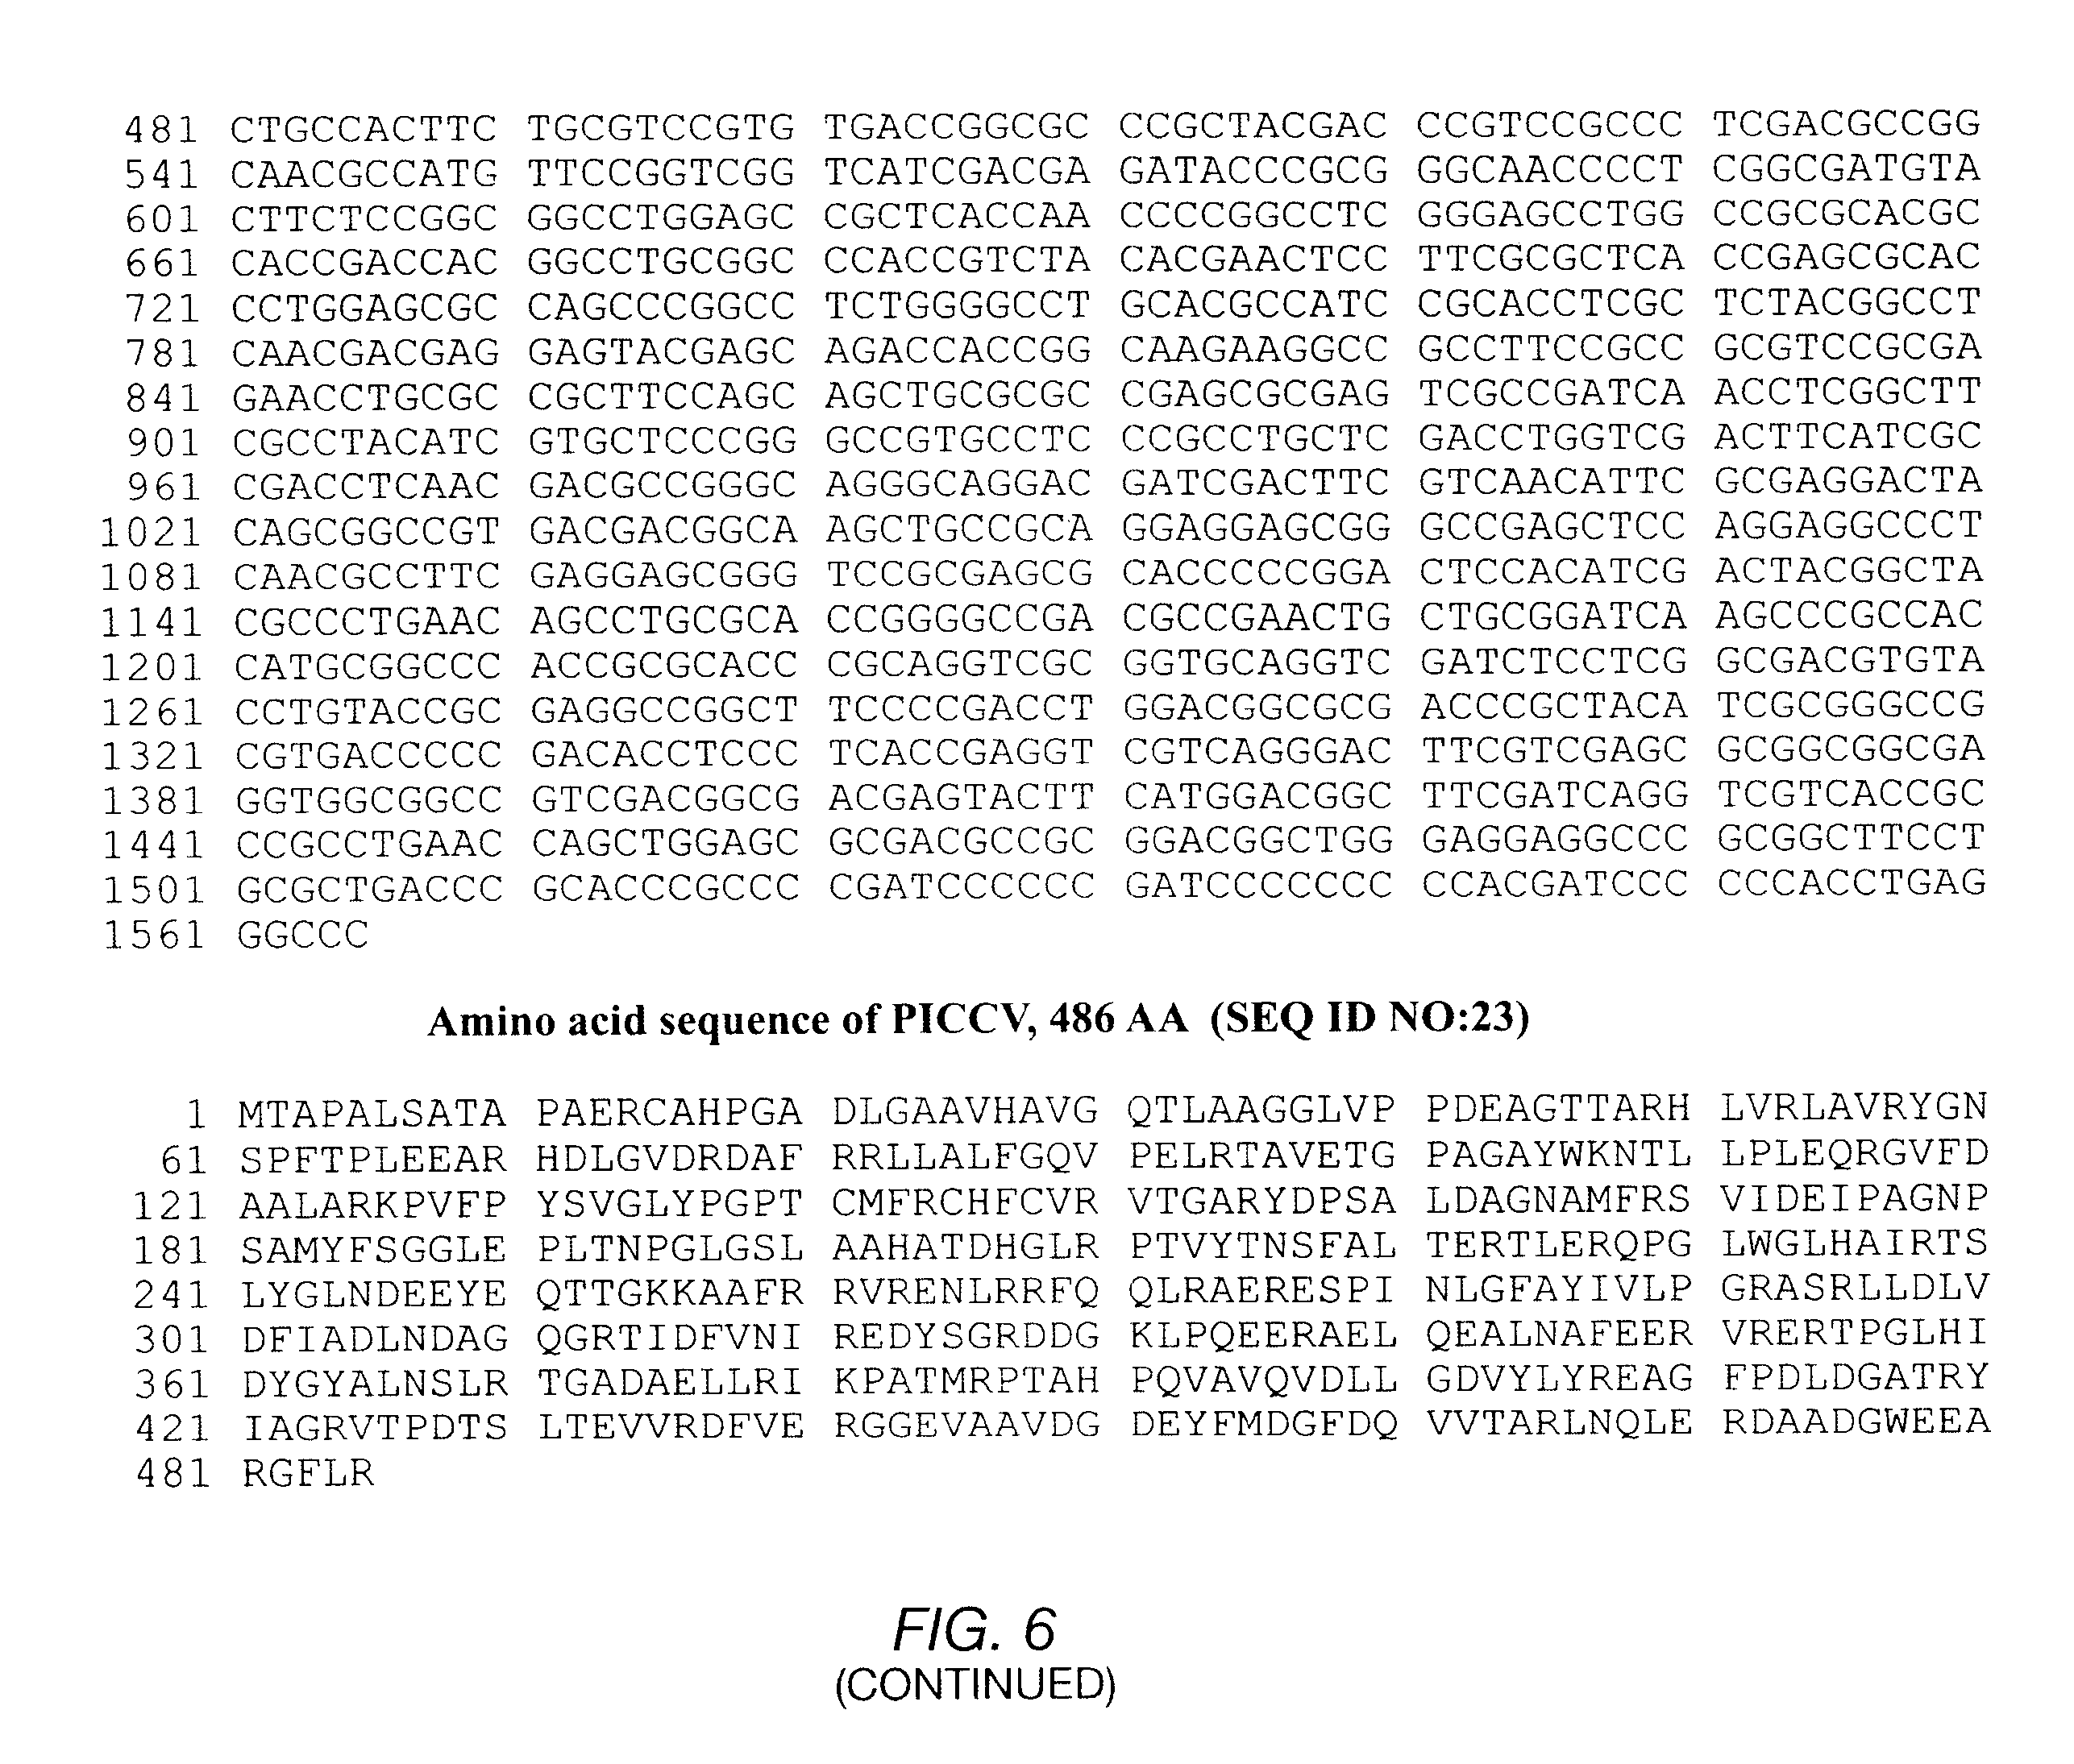 gene chlr in streptomyces venezuelae Xue y et al (1998) a gene cluster for macrolide antibiotic biosynthesis in streptomyces venezuelae: architecture of metabolic diversity proc natl acad sci u s a 95(21):12111-6 the minimum information about a biosynthetic gene cluster (mibig) specification the genomics standards consortium, 2014.